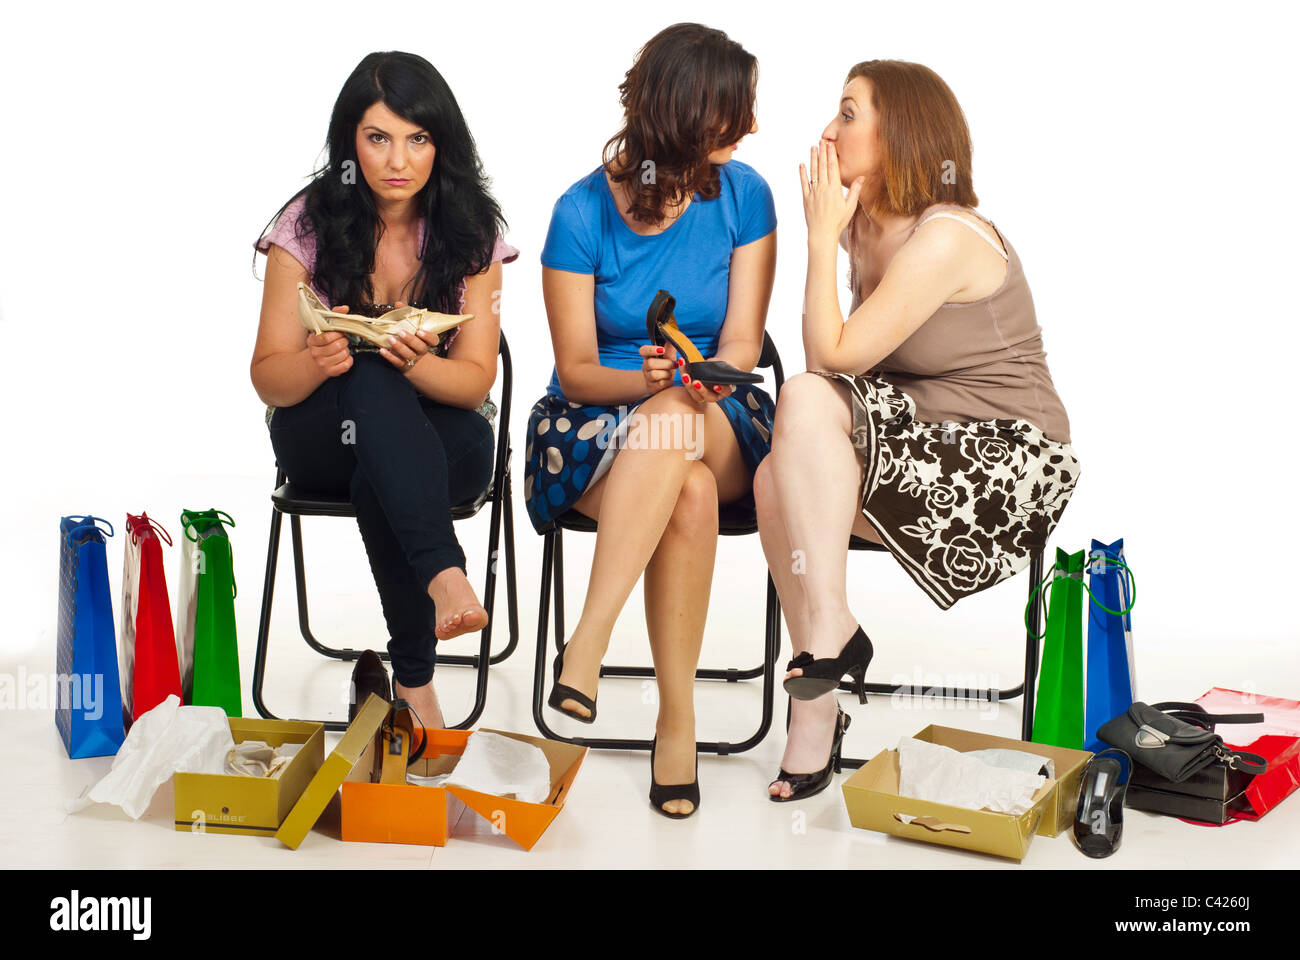 Two women gossip or telling secrets about their friend with sad face in a shop place at shopping - Stock Image